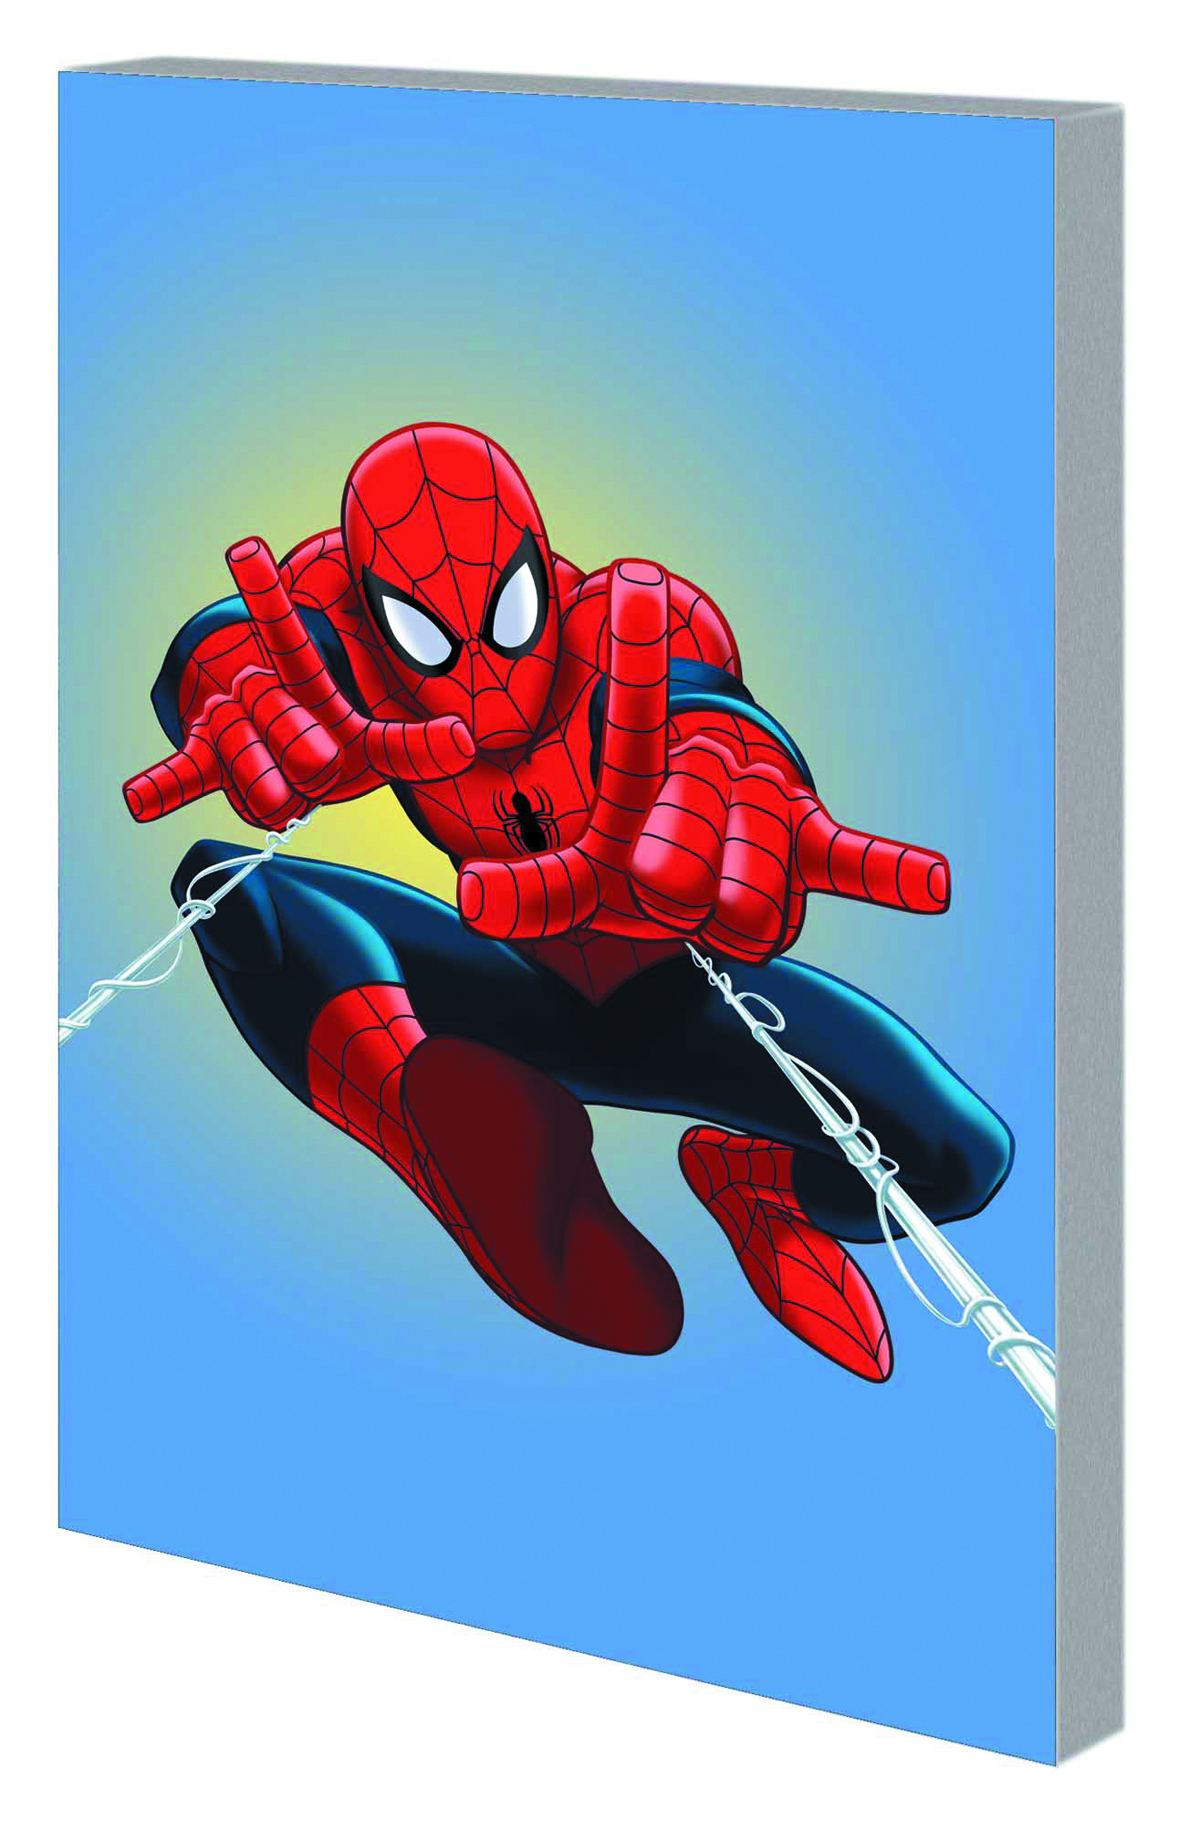 MARVEL UNIVERSE ULT SPIDER-MAN COMIC READER TP #4